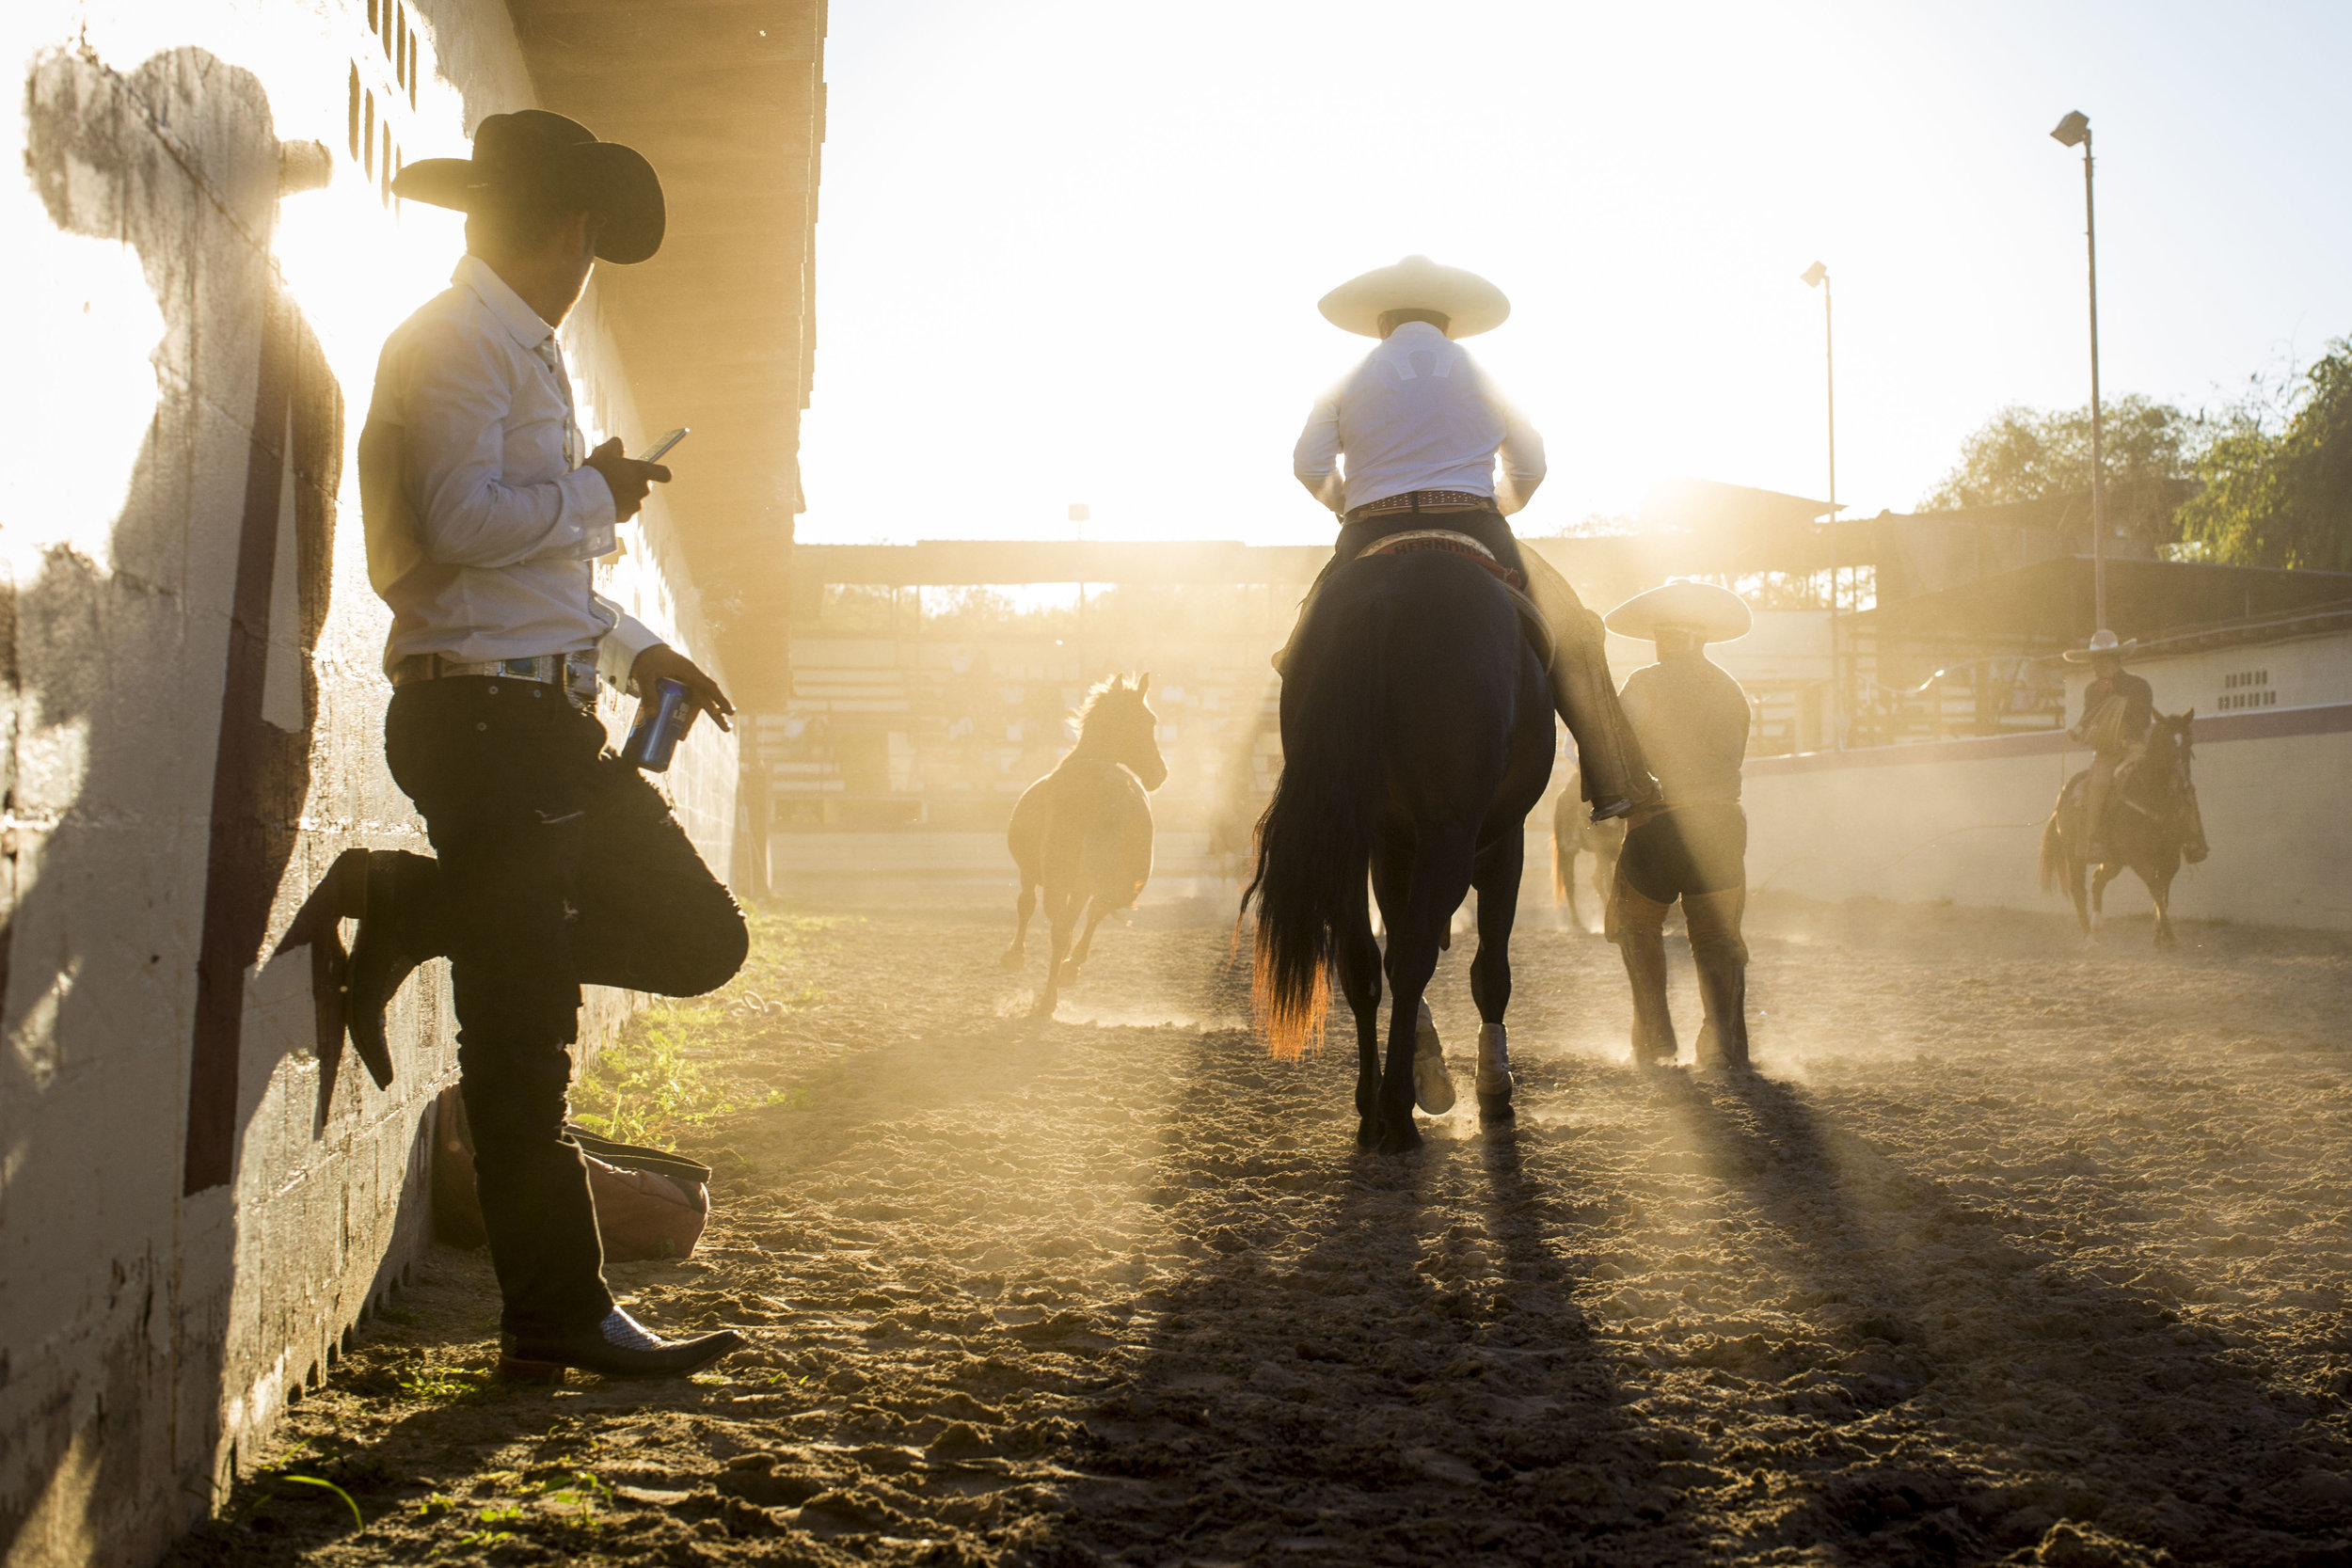 Charros try to lasso a loose horse as a part of the Anniversary of the Mexican Revolution Charreada at the San Antonio Charros Association in San Antonio, Texas, USA on November 20, 2016.   These charreadas are seen as a way for Mexican-Americans to hold onto and honor their heritage.  Teams are often comprised of several generations of family members.  The modern style of charreada developed after the Mexican Revolution, when the traditional charros began to disappear.